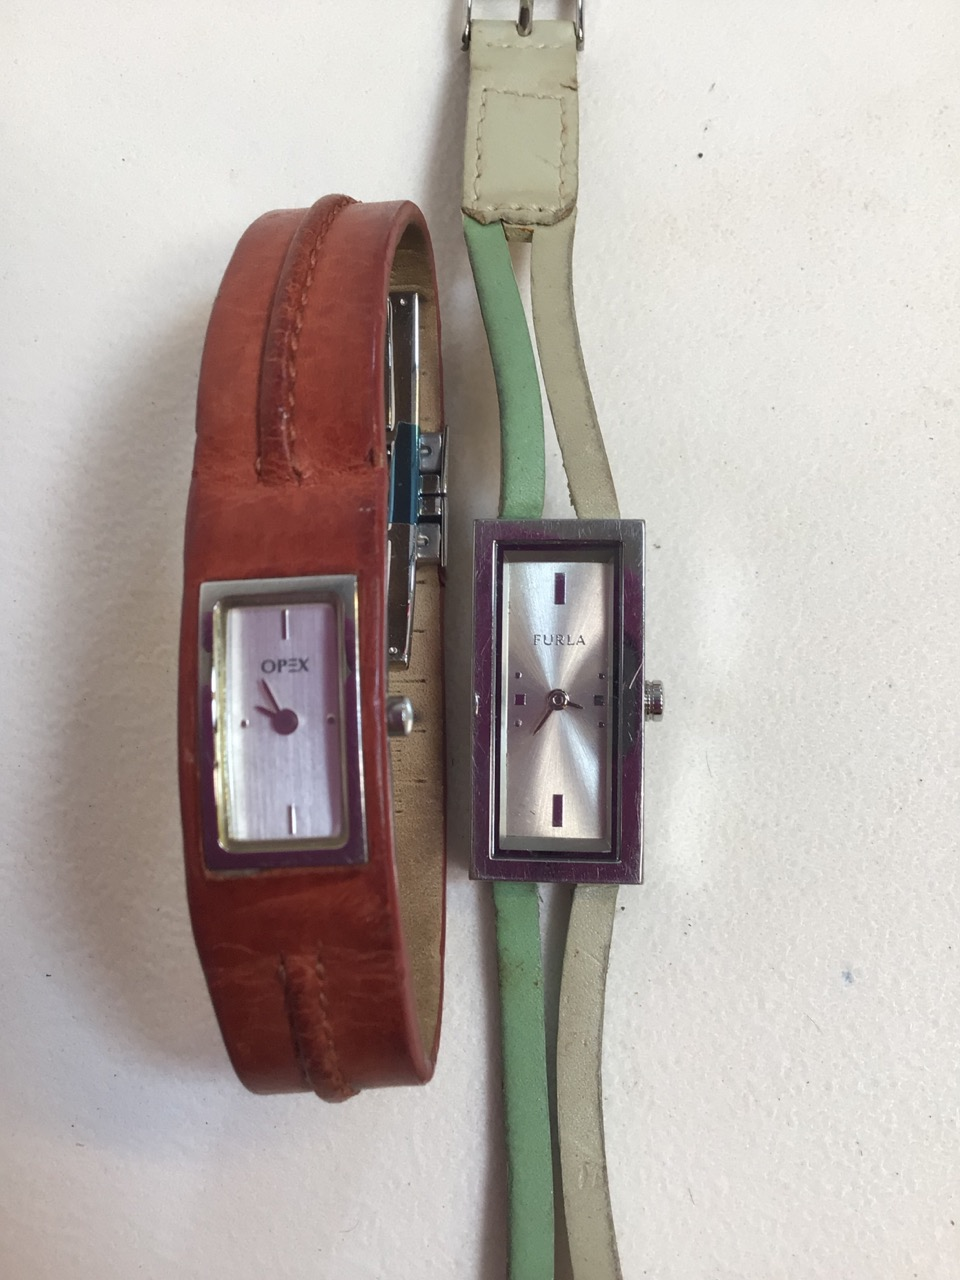 Two ladies watches, Opex and Furla with leather strap.